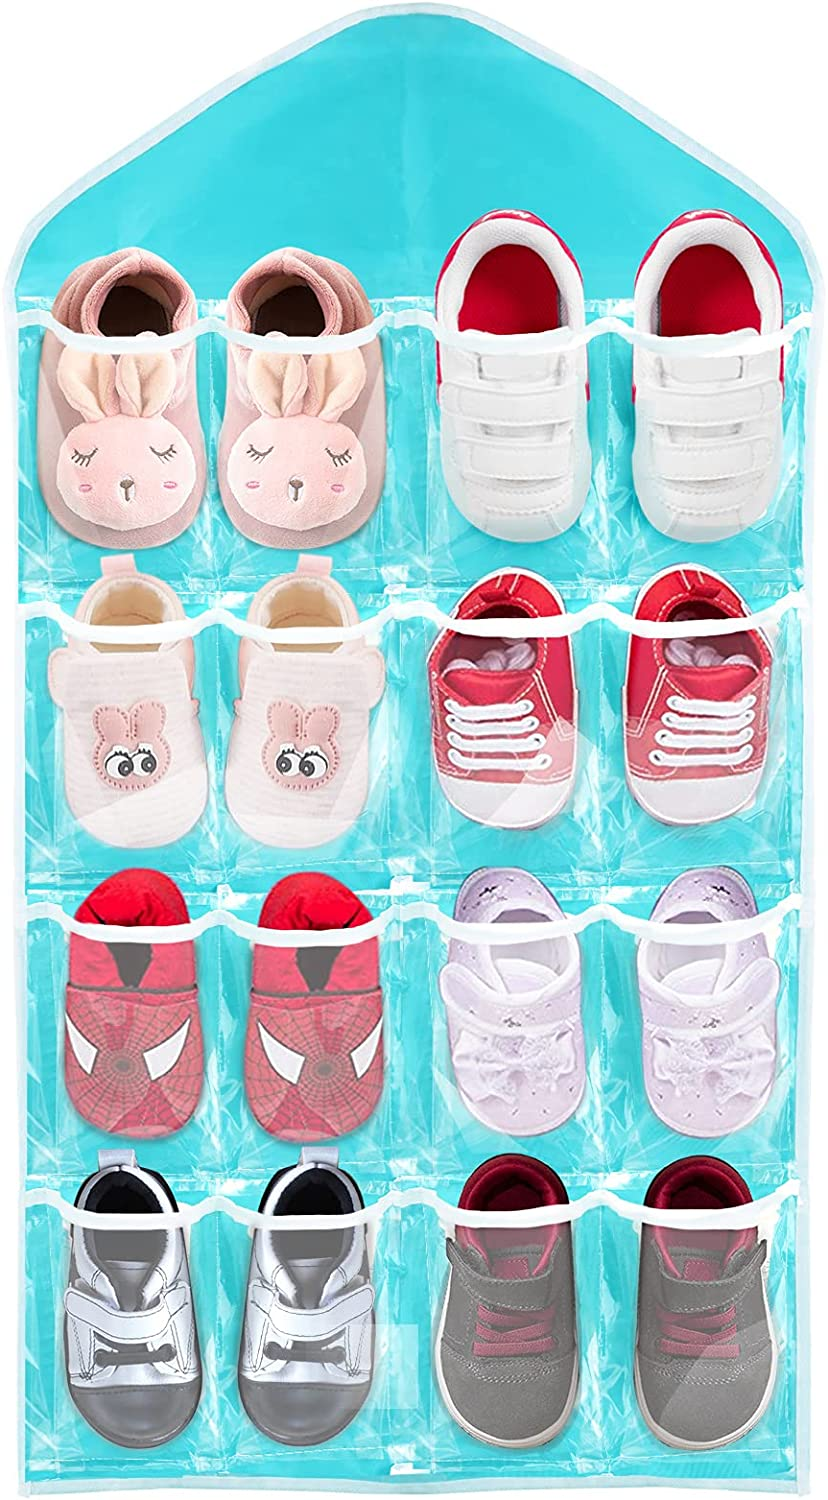 16 Selling Pockets Baby Shoe Organizers Clear Door Cl Hanging Over Wall Sales of SALE items from new works